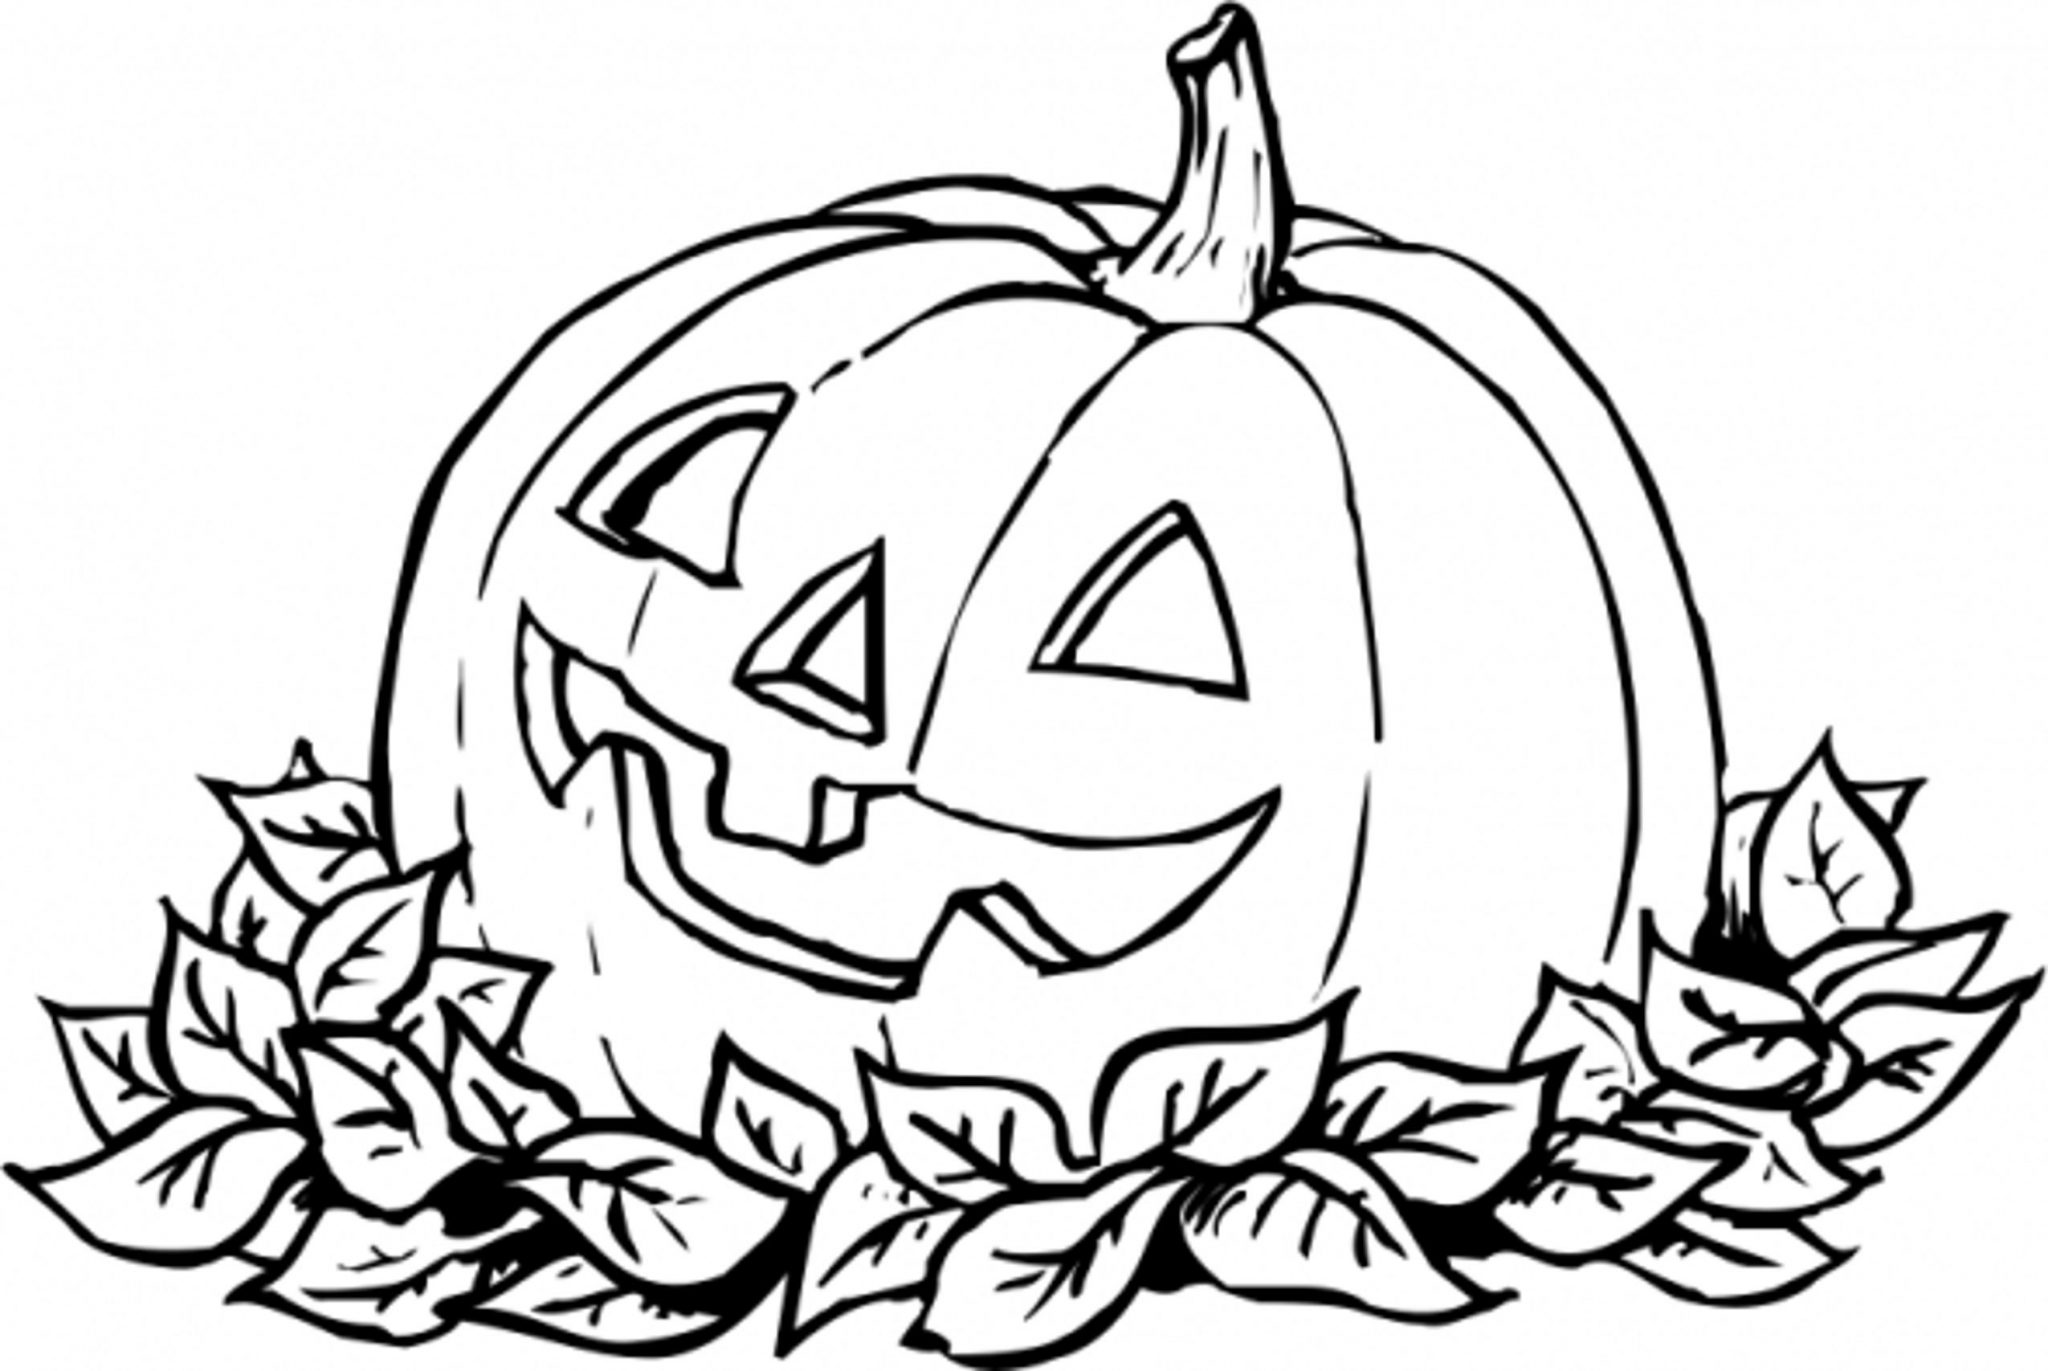 pumpkin colouring page 4 picture of cute pumpkin coloring pages gtgt disney pumpkin colouring page